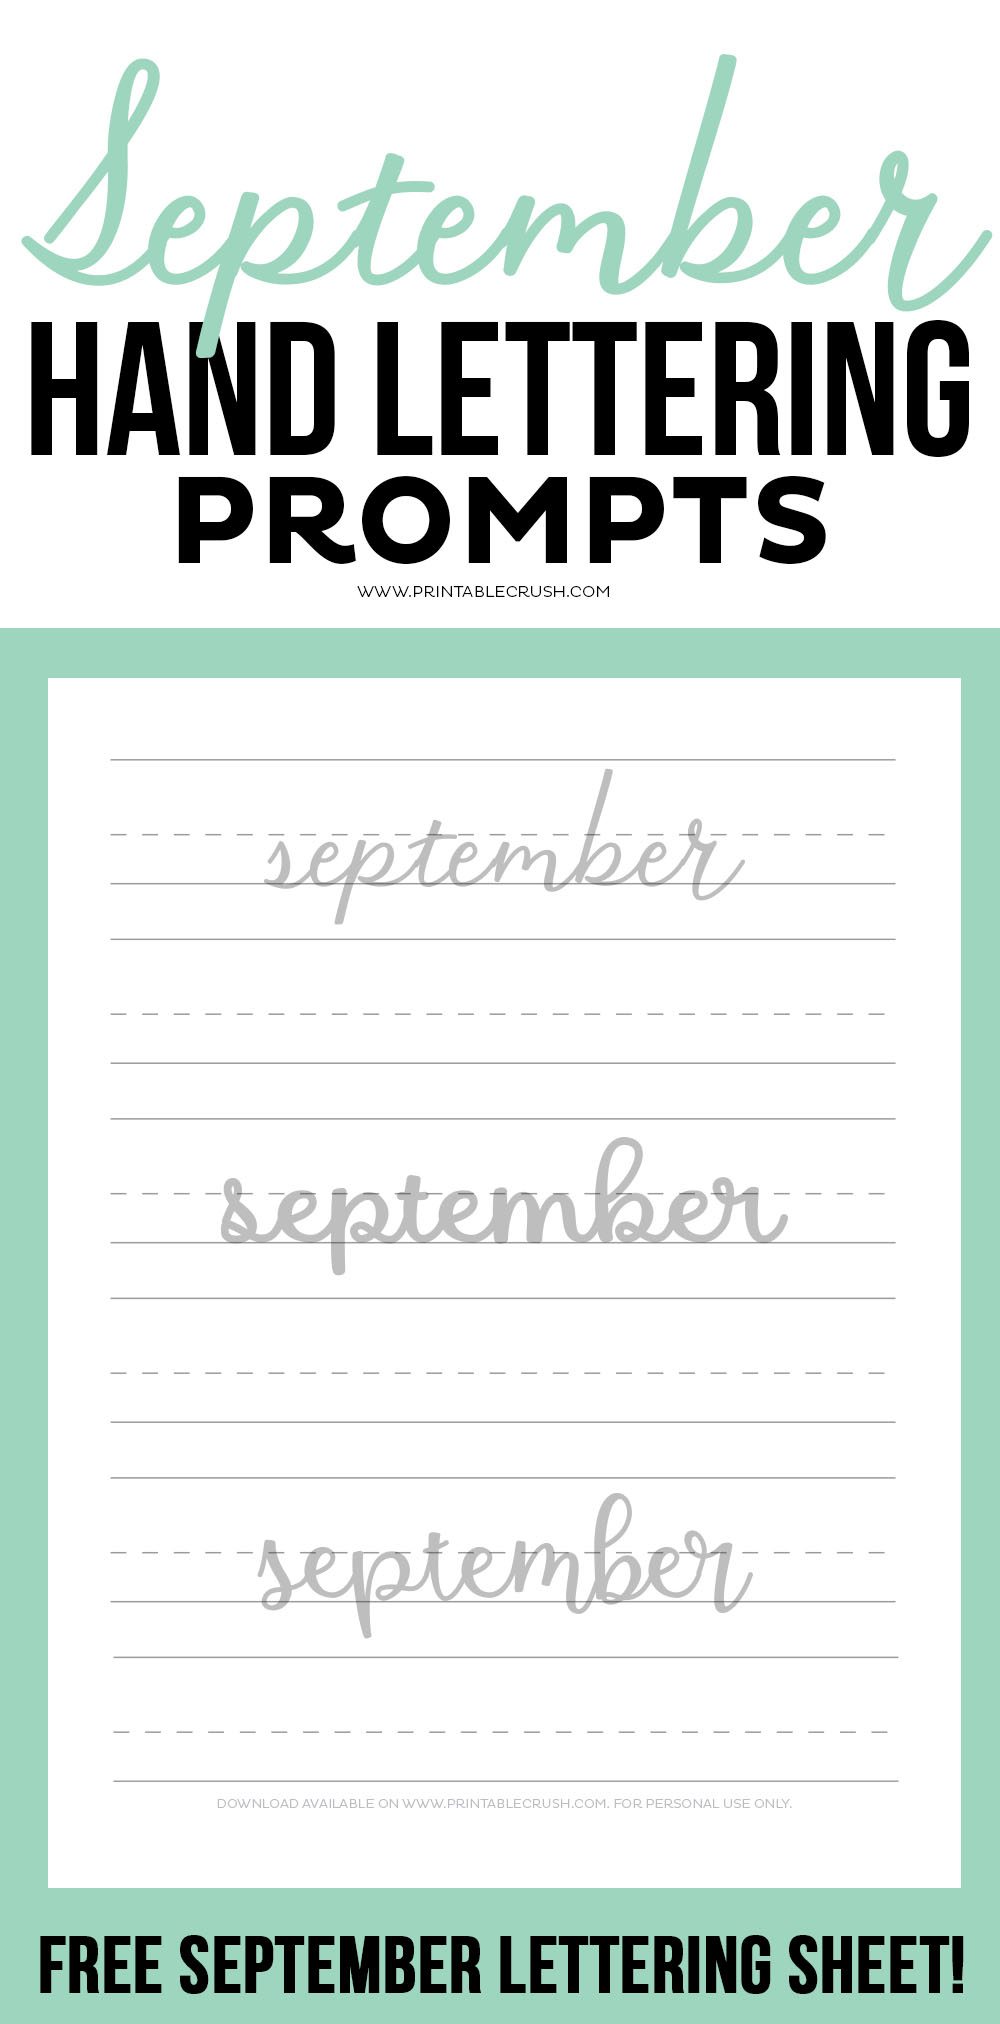 Get 30 September Hand Lettering Prompts plus a FREE practice sheet in this new blog series to improve your hand lettering skills!